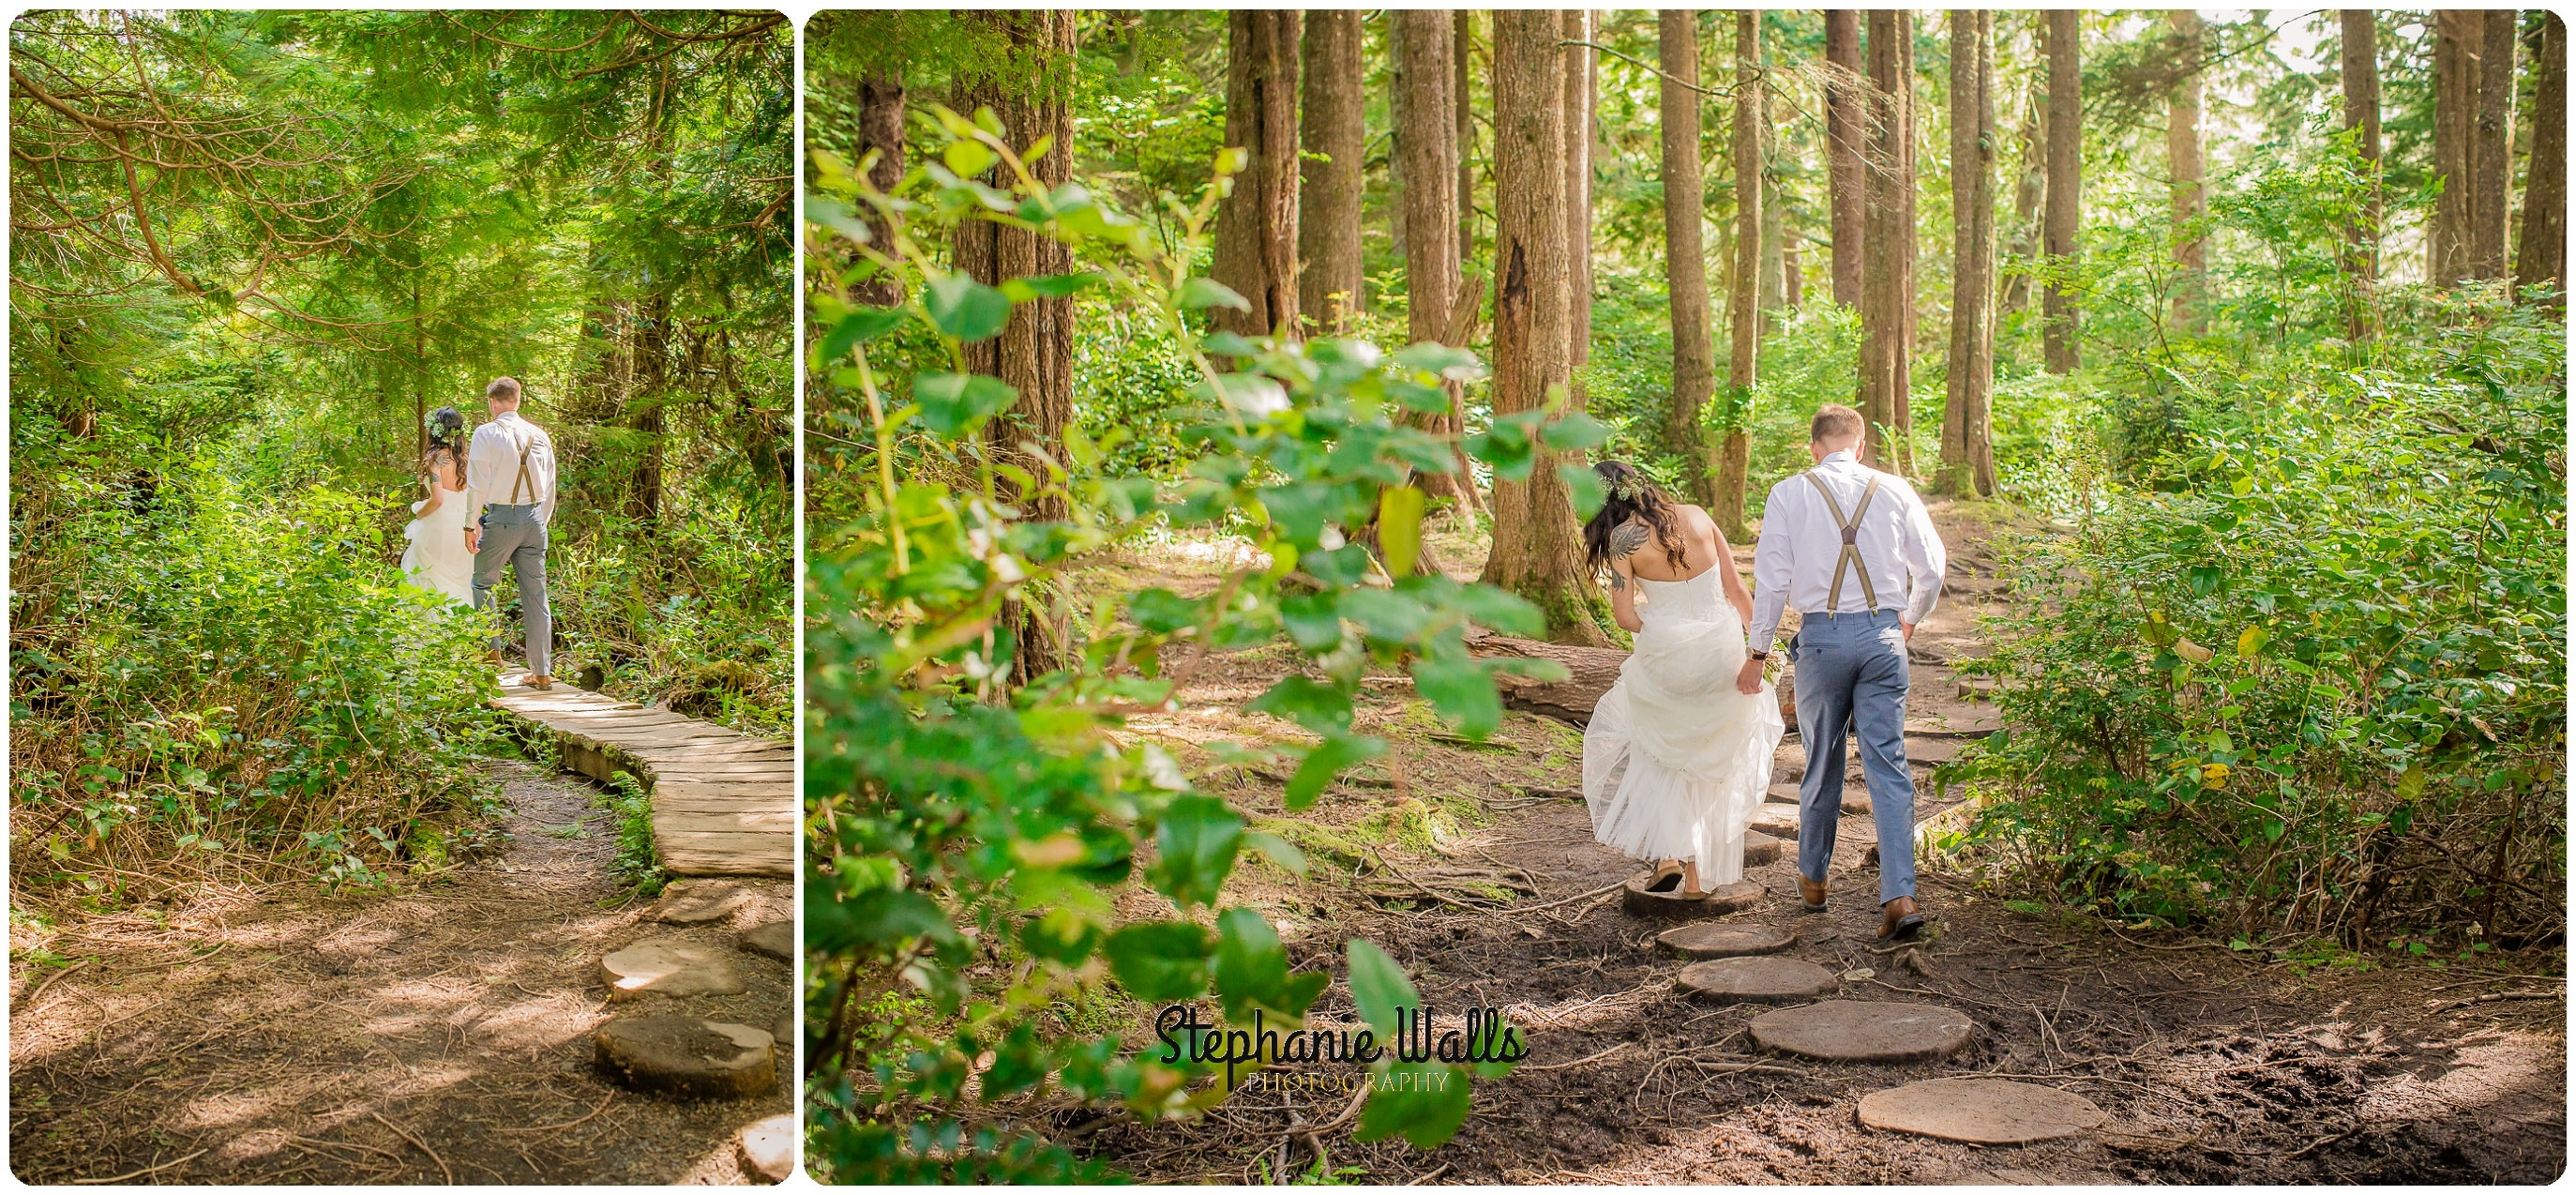 belfour 058 INTIMATE CLIFFSIDE ELOPEMENT | CAPE FLATTERY NEAH BAY | STEPHANIE WALLS PHOTOGRAPHY